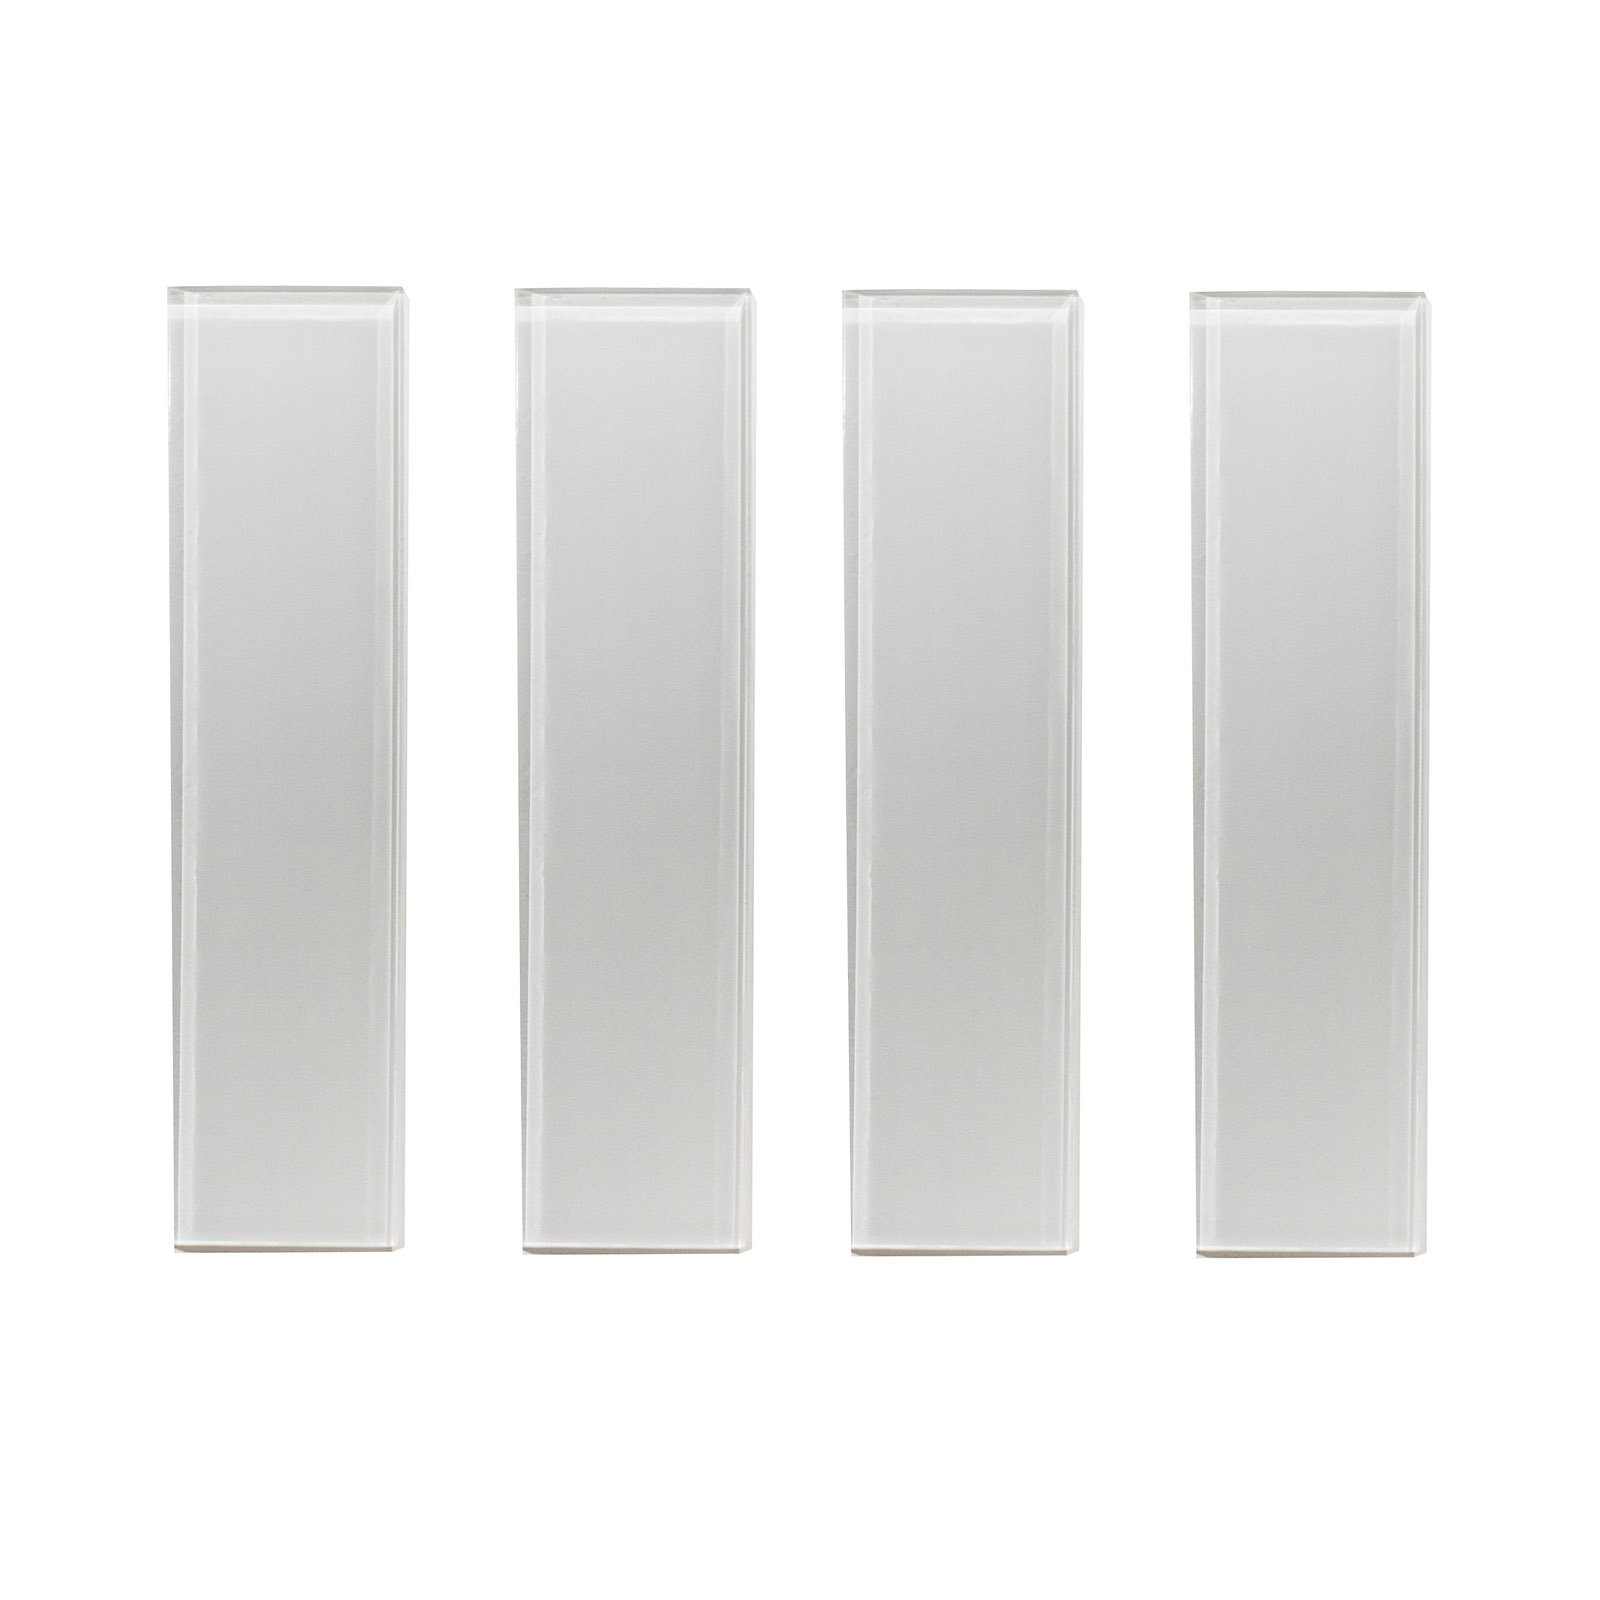 Glass Subway Tile,Oracle Collection, GTSU 002 - Silver Grey, 3''X12'', 4 Pieces per SQFT (Box of 5 SQFT)